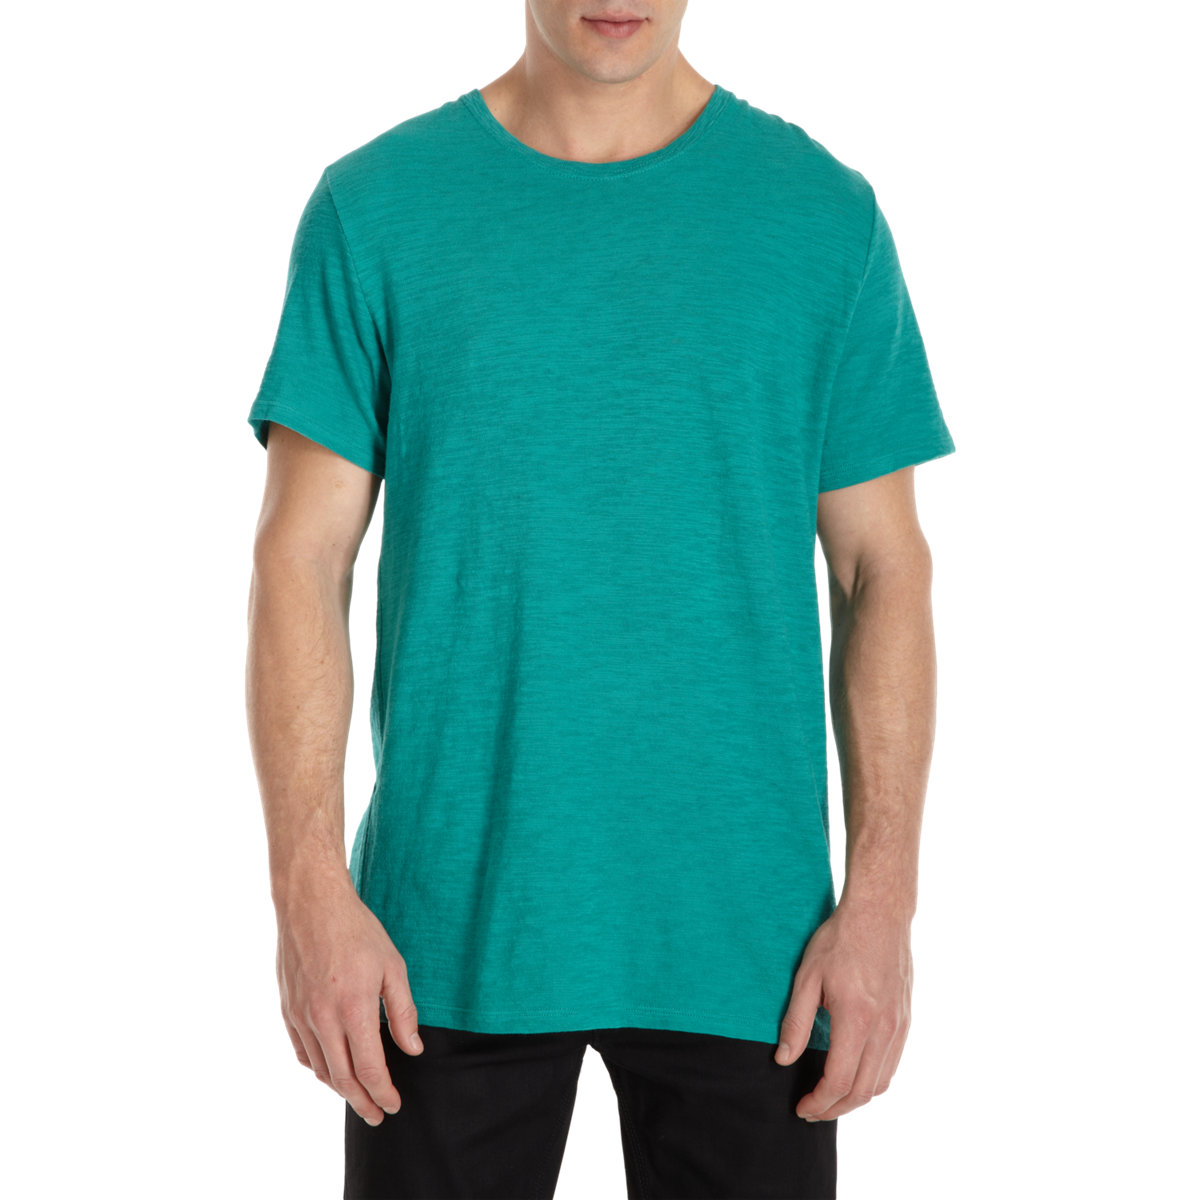 Lyst atm slub crewneck tee in green for men for Atm tee shirts barneys